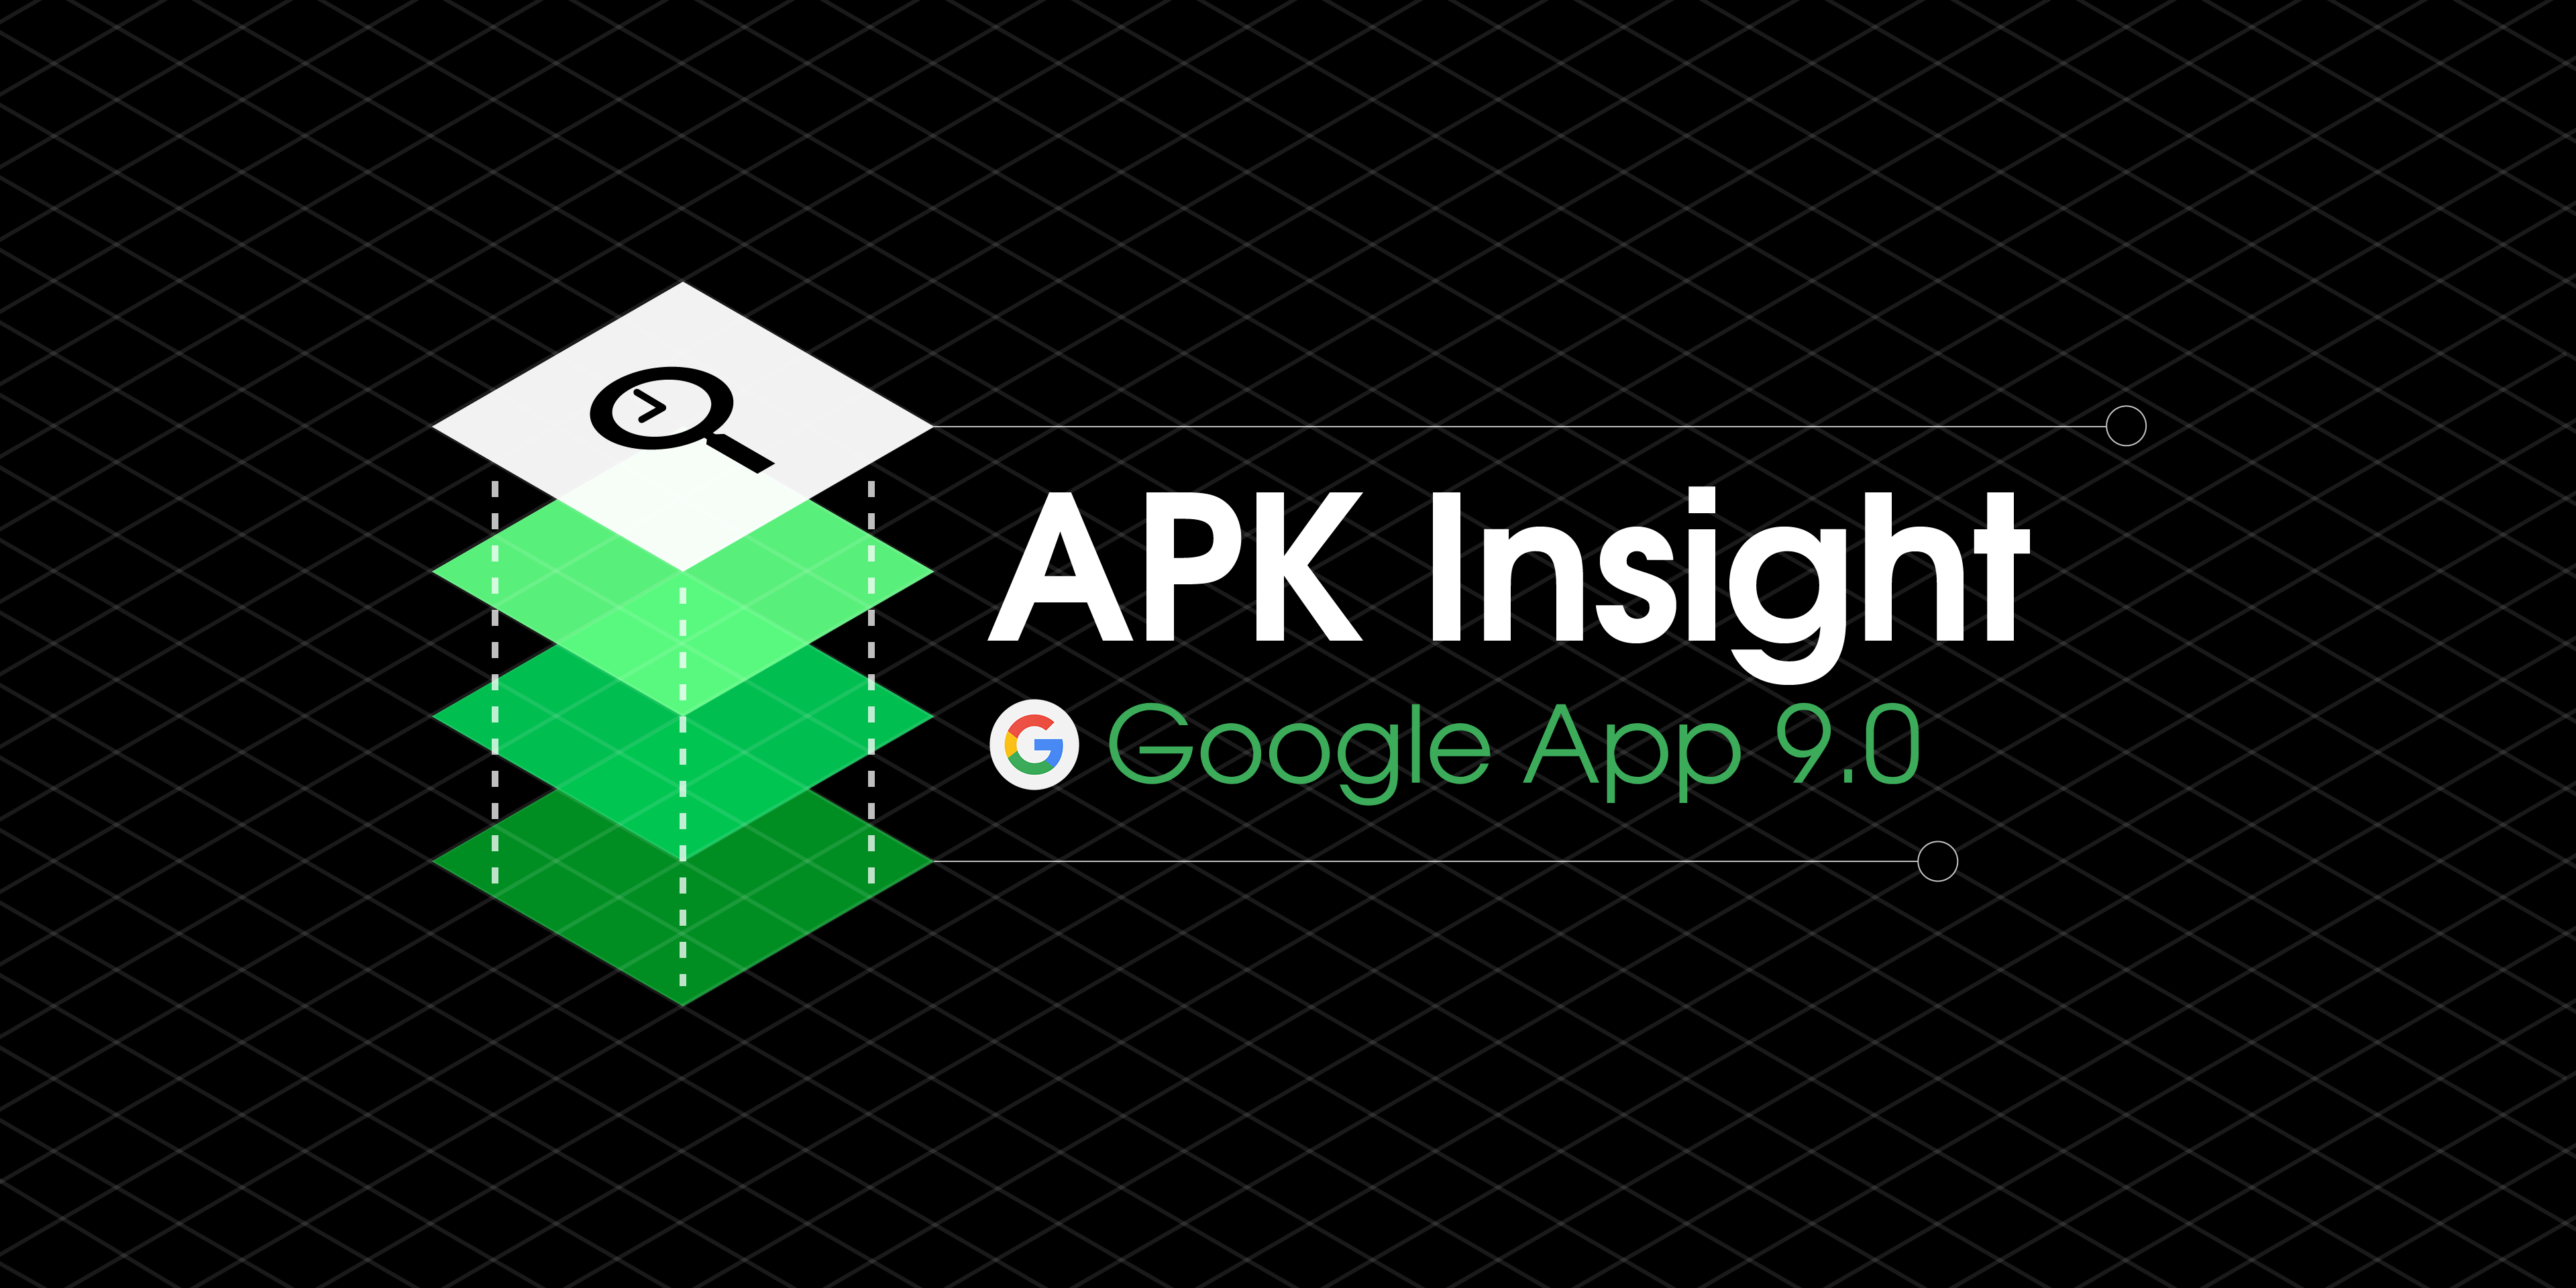 [Update: AOD, Pixel Launcher-Wetter behoben] Google App 9.0 bereitet Transkription für Podcasts vor, gerundeter Assistent, 9to5G-Shout-Out [APK Insight]